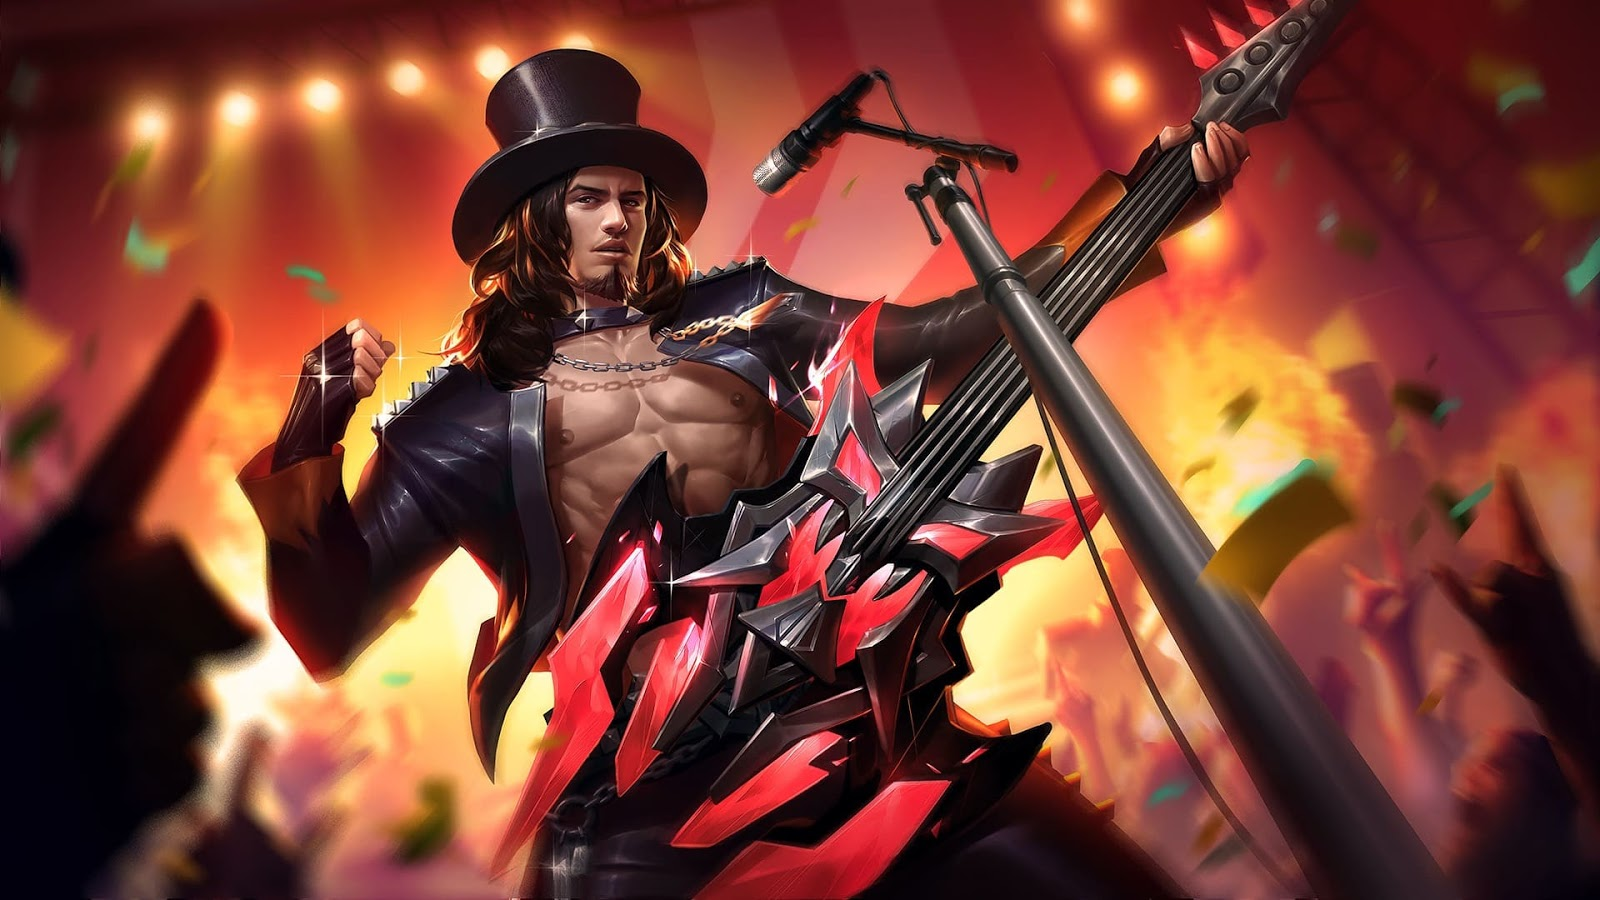 Wallpaper Clint Rock and Roll Skin Mobile Legends HD for PC